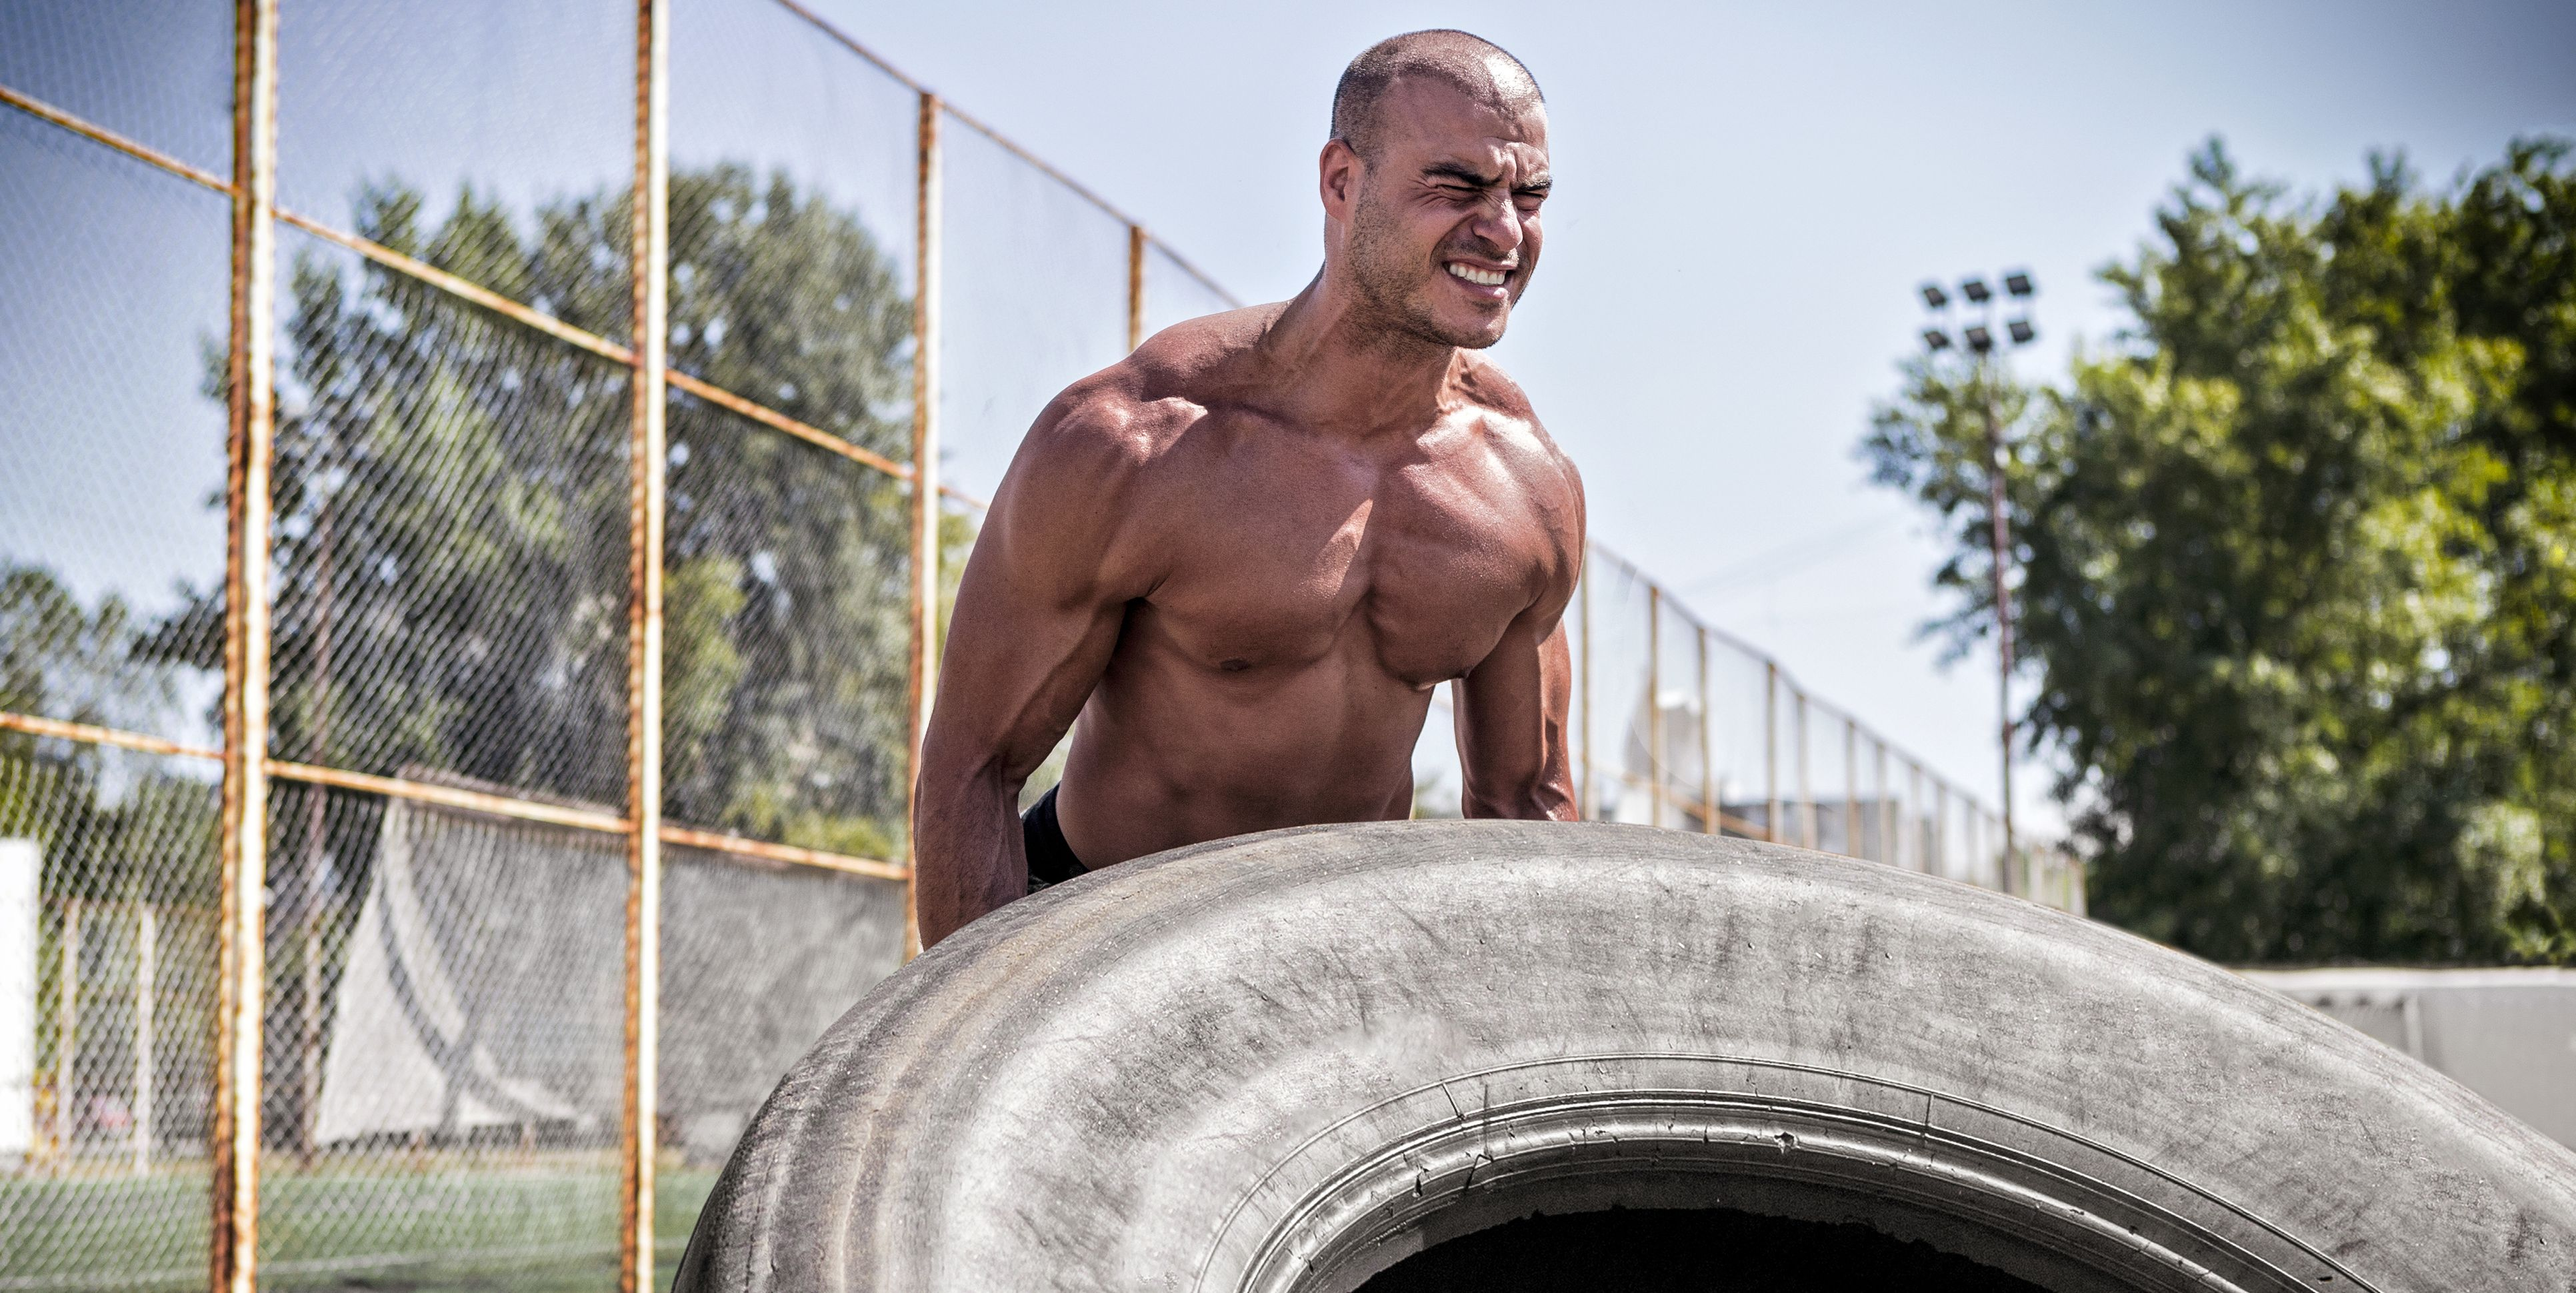 Workout with tire